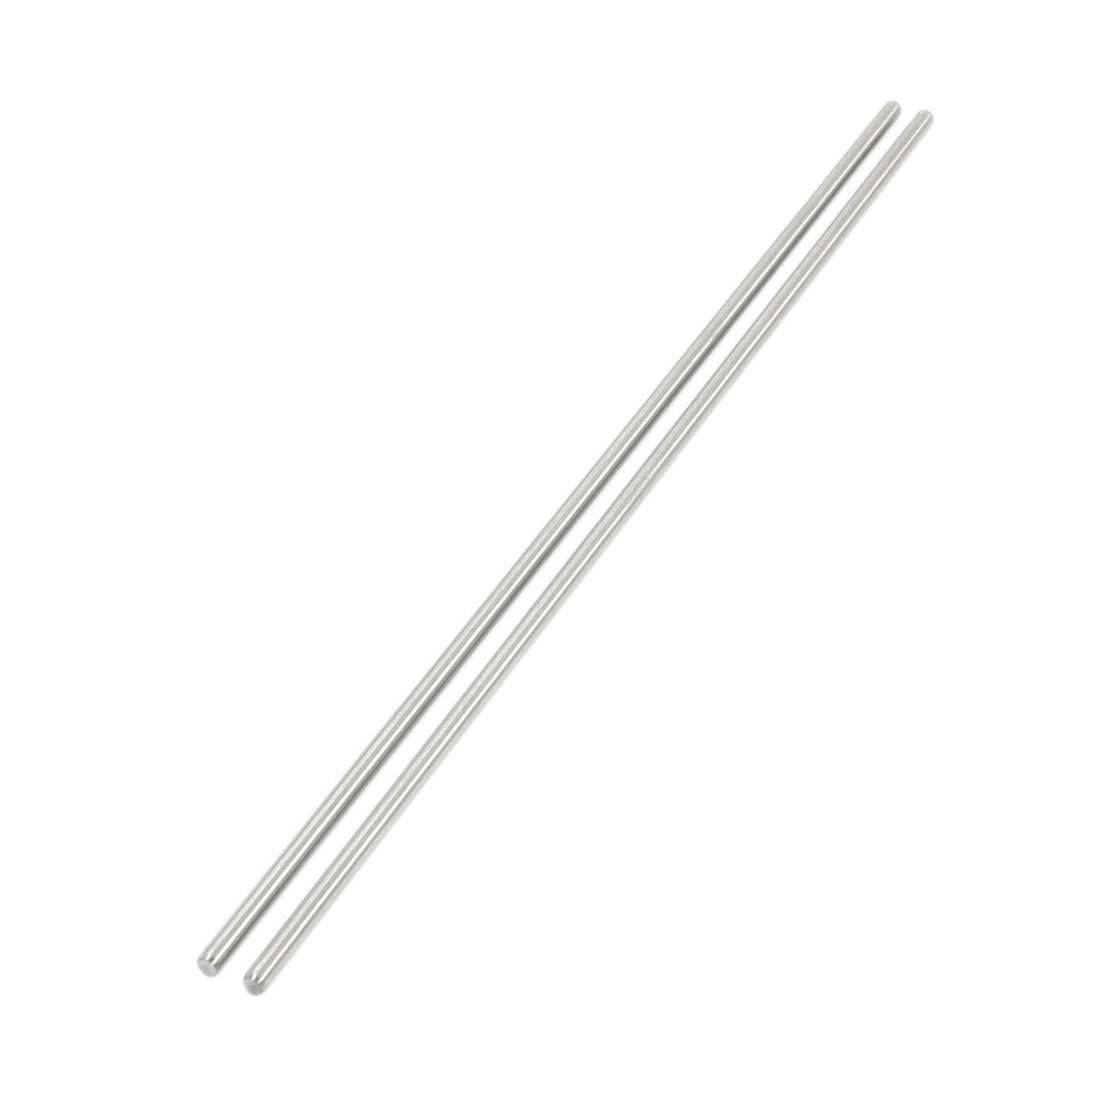 "2Pcs 2mm Diameter Stainless Steel Motion Axle Circular Round Rod Bar 5.5"" Long"